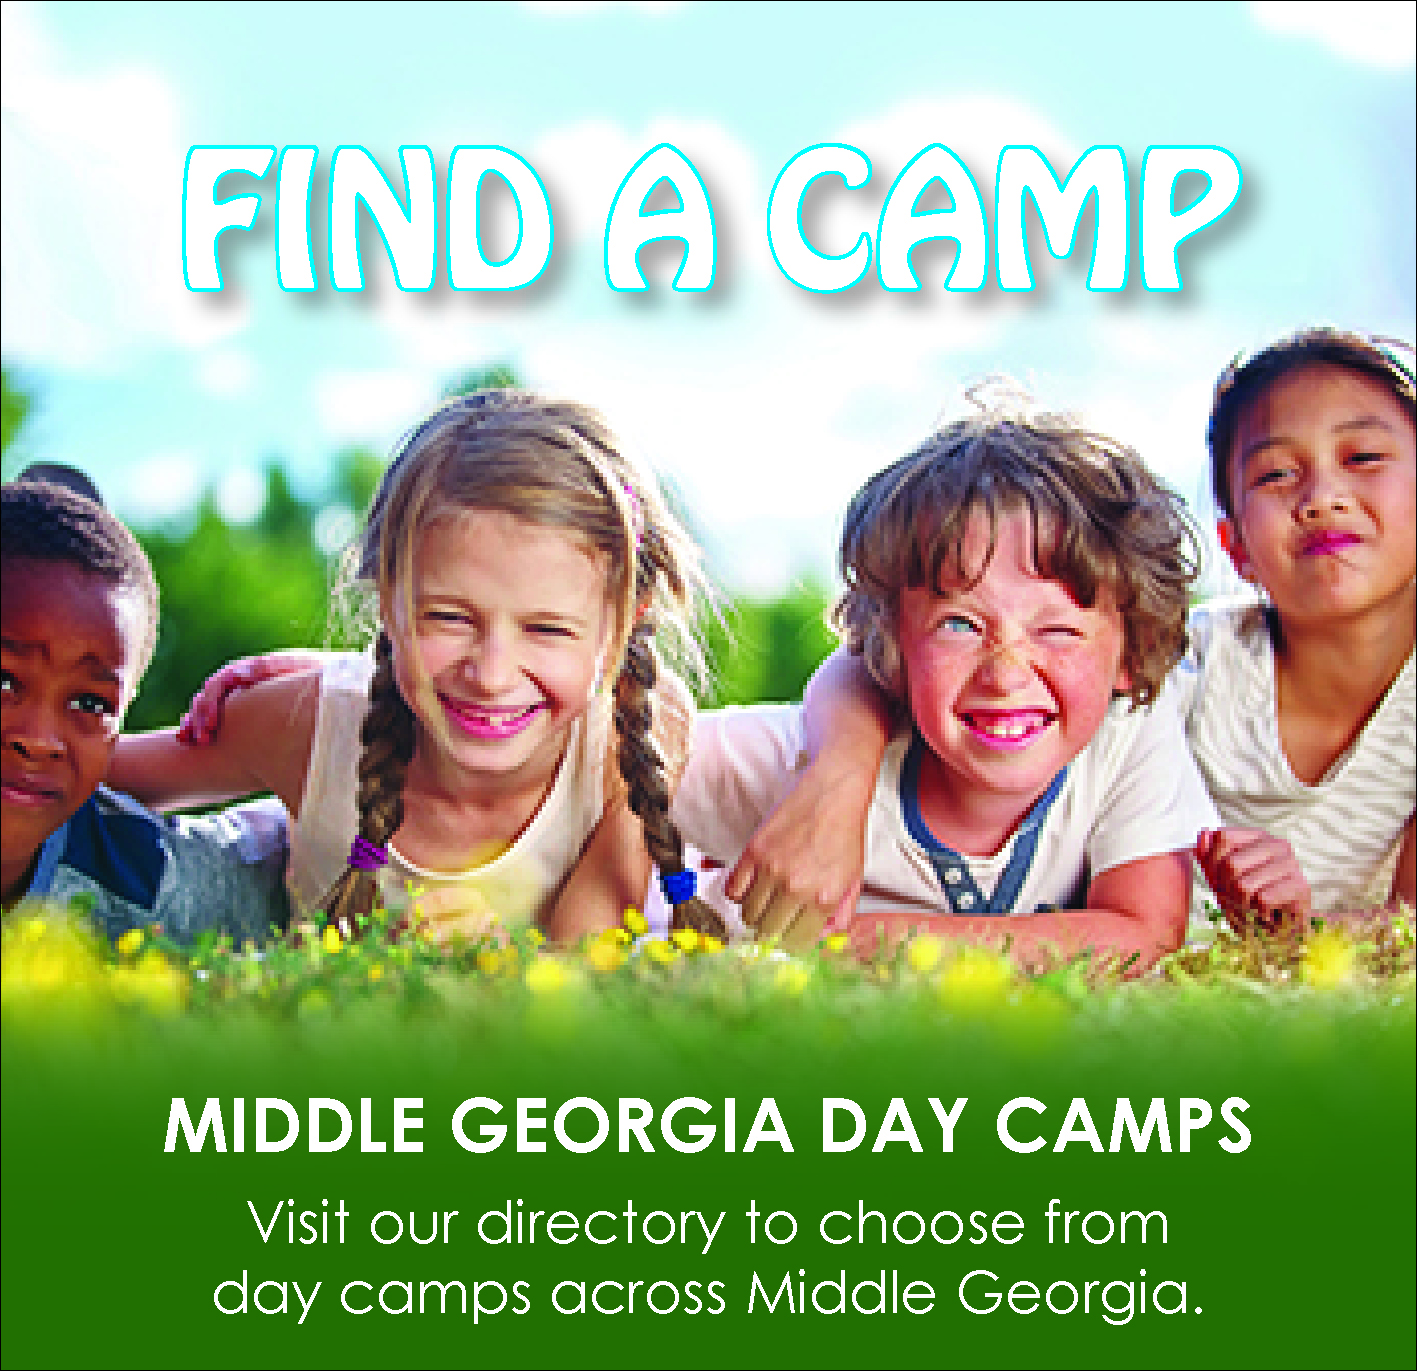 Middle Georgia Day Camps